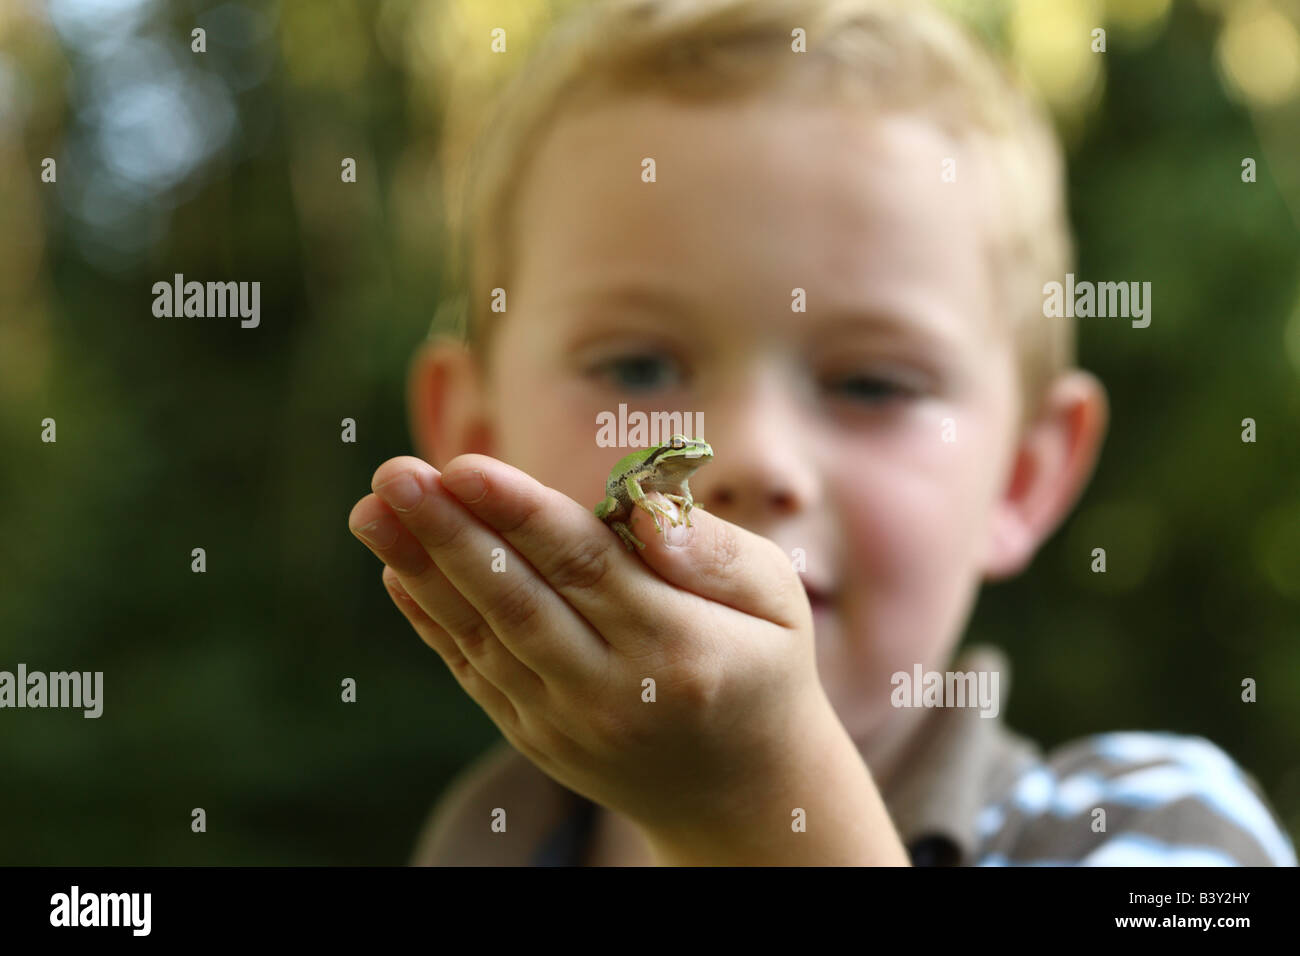 Young boy holding small tree frog Banque D'Images